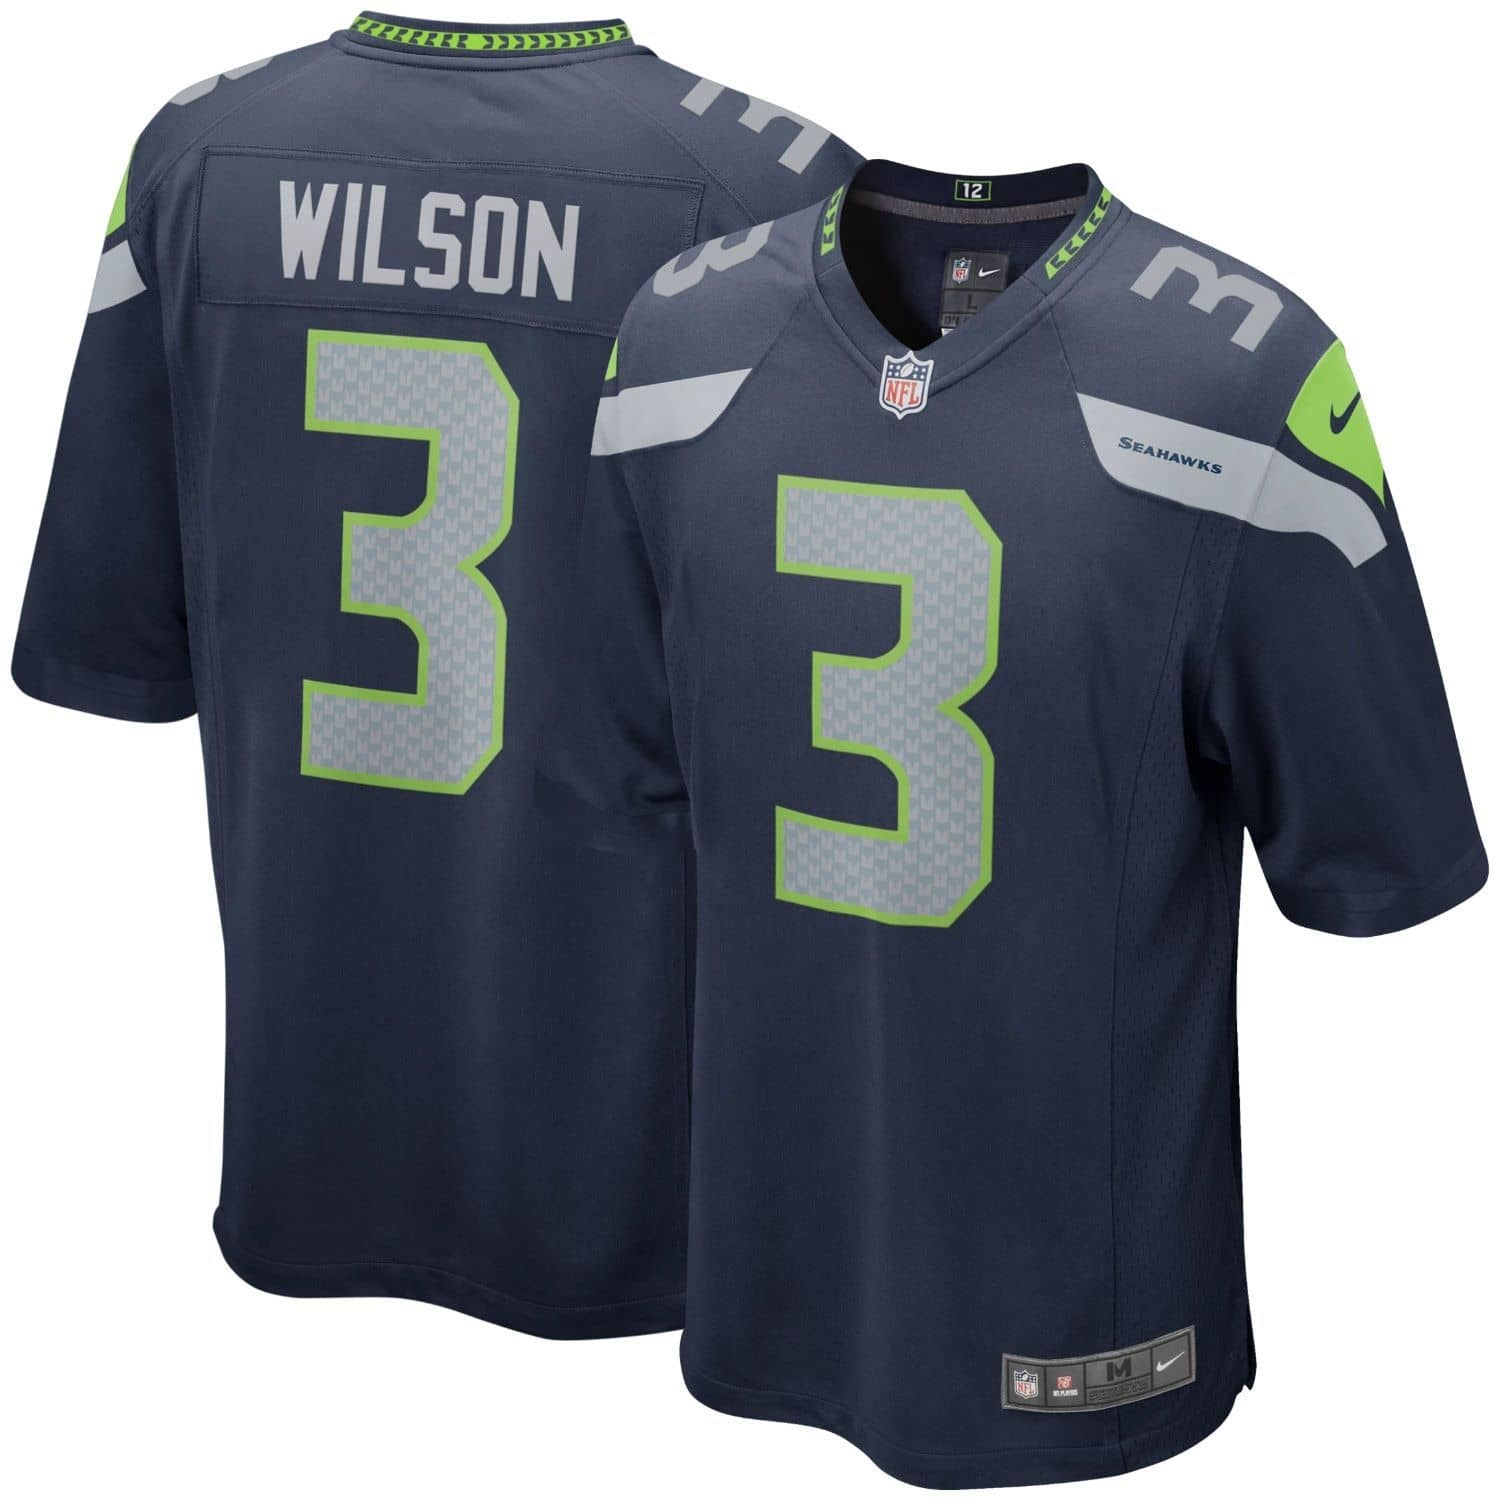 detailed look 574a3 8fc23 Russell Wilson #3 Seattle Seahawks Game Football NFL Jersey Navy